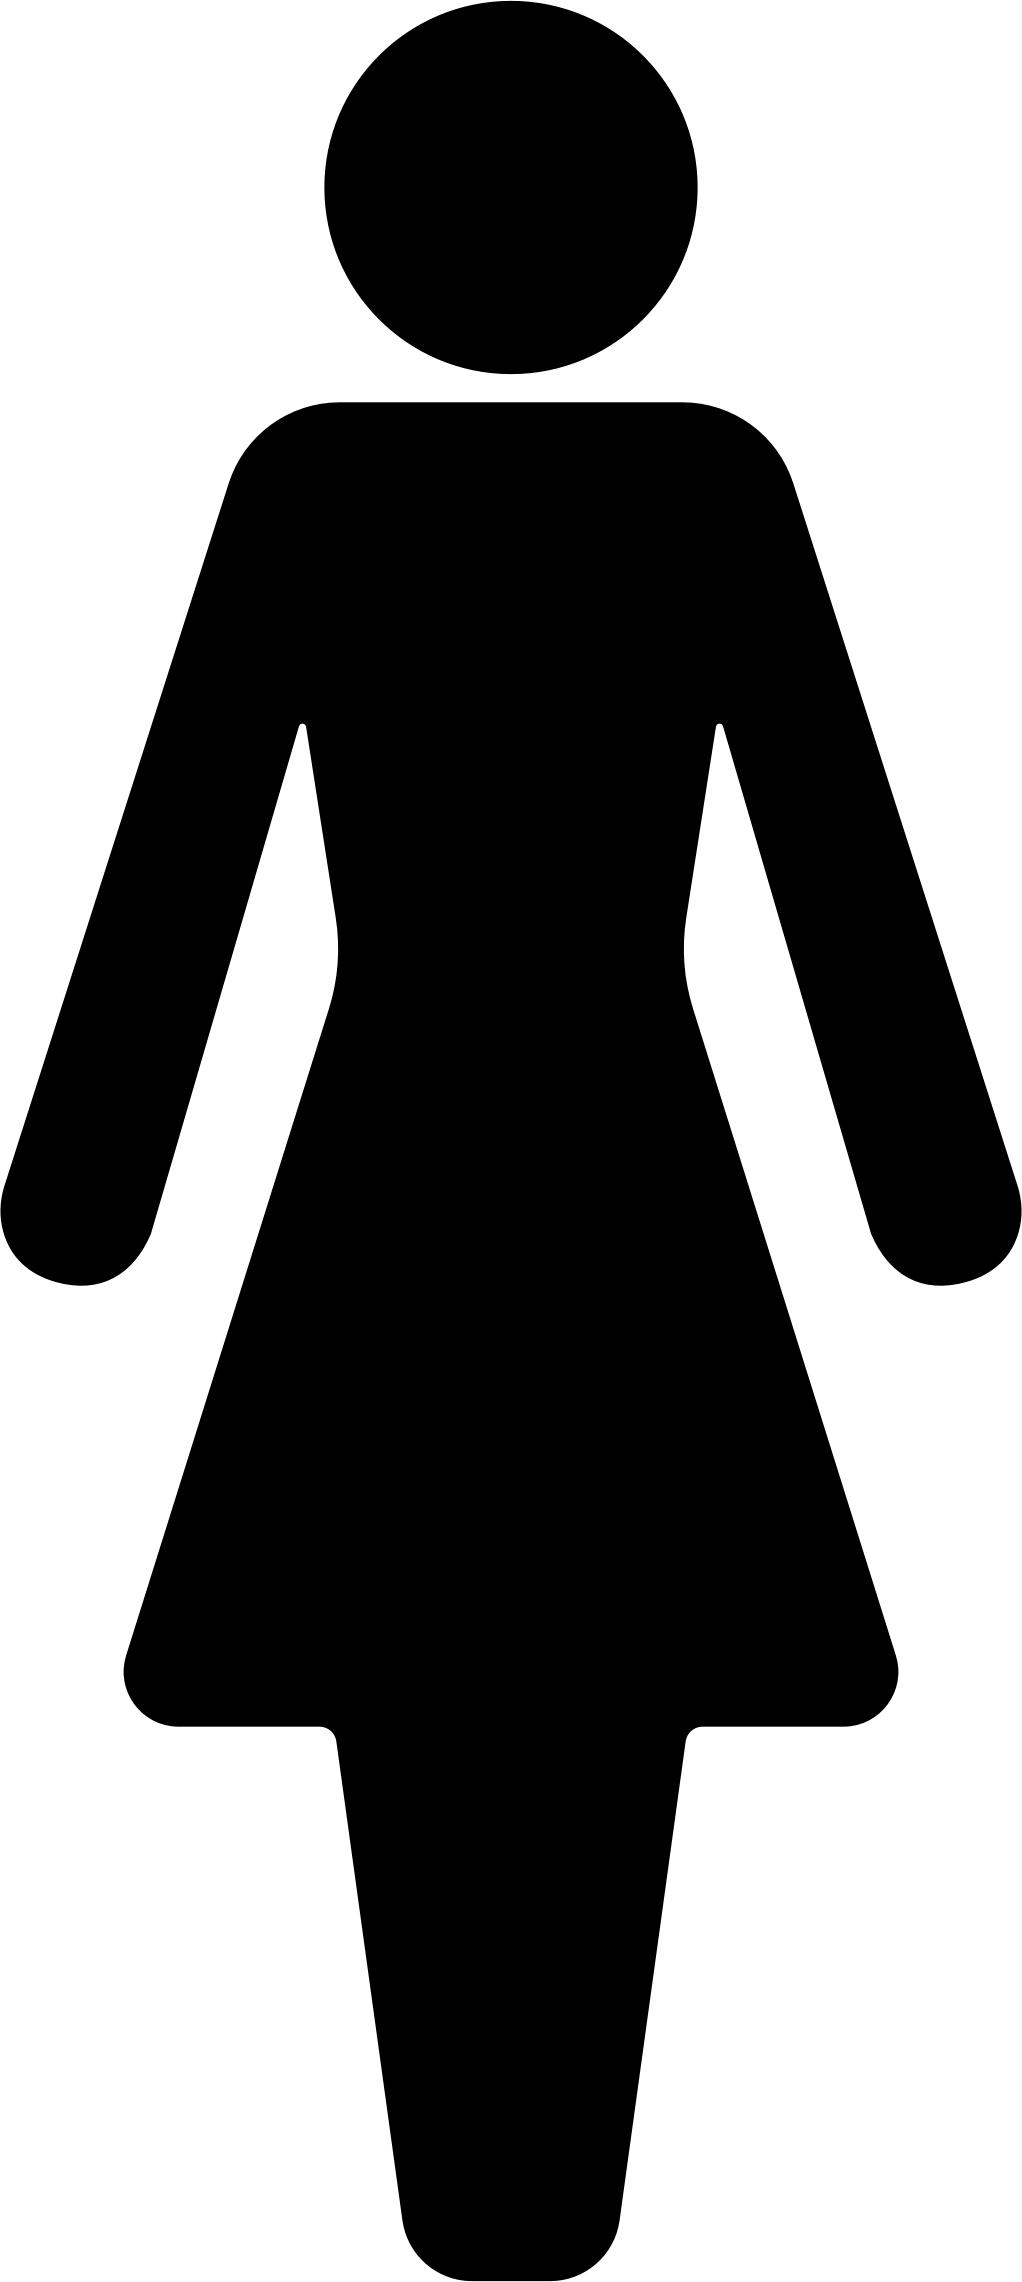 1022x2282 Female Symbol Silhouette Icons Png